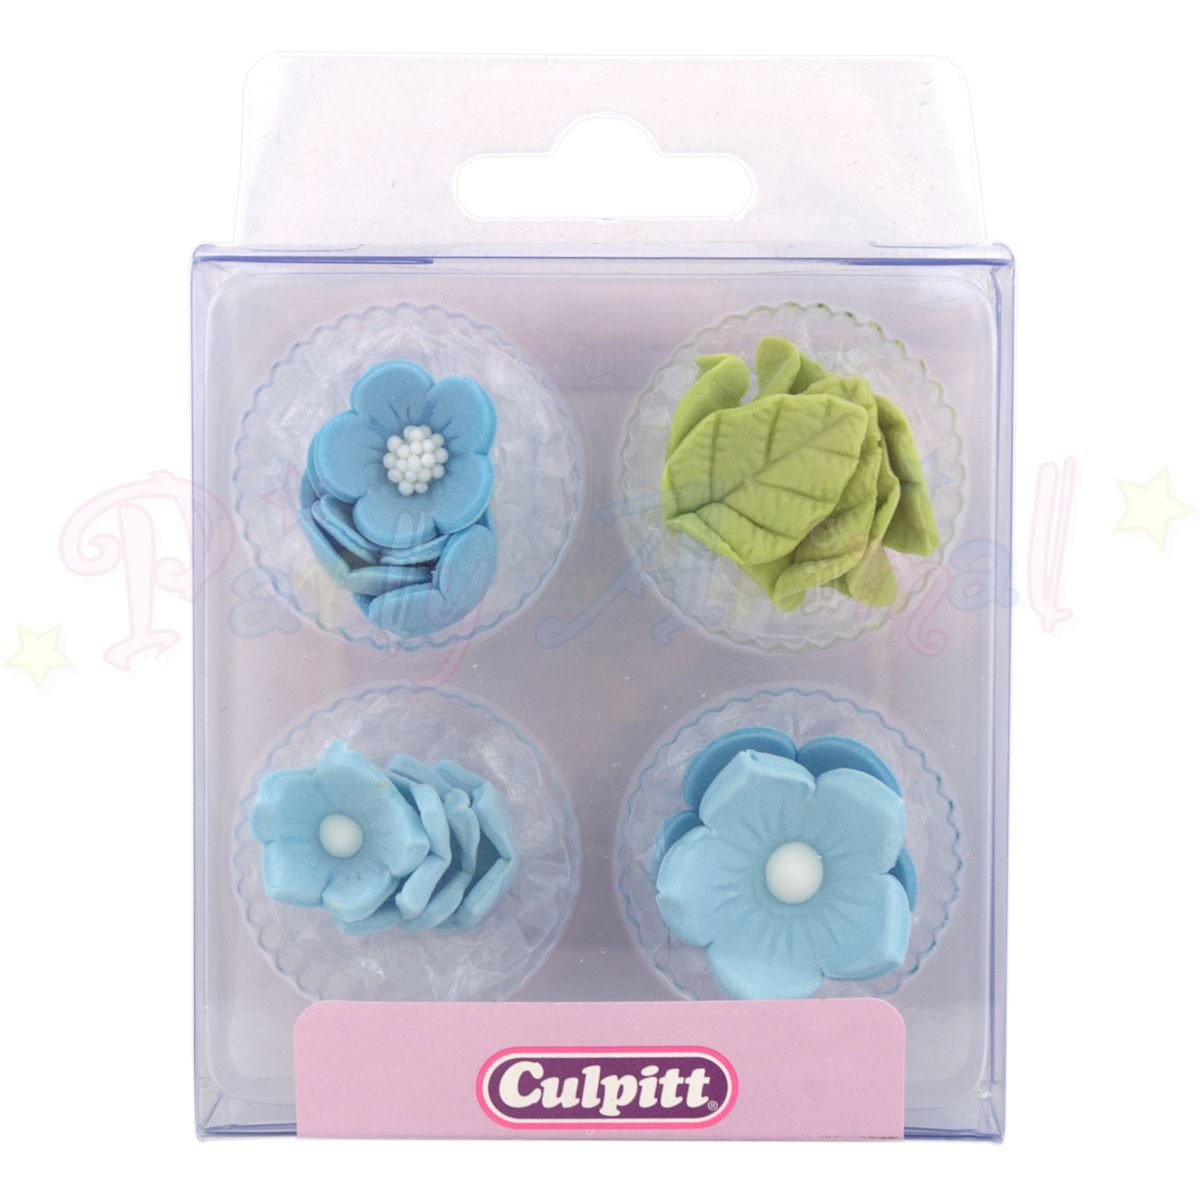 Culpitt Edible Decorations BLUE FLOWERS Cupcake Toppers